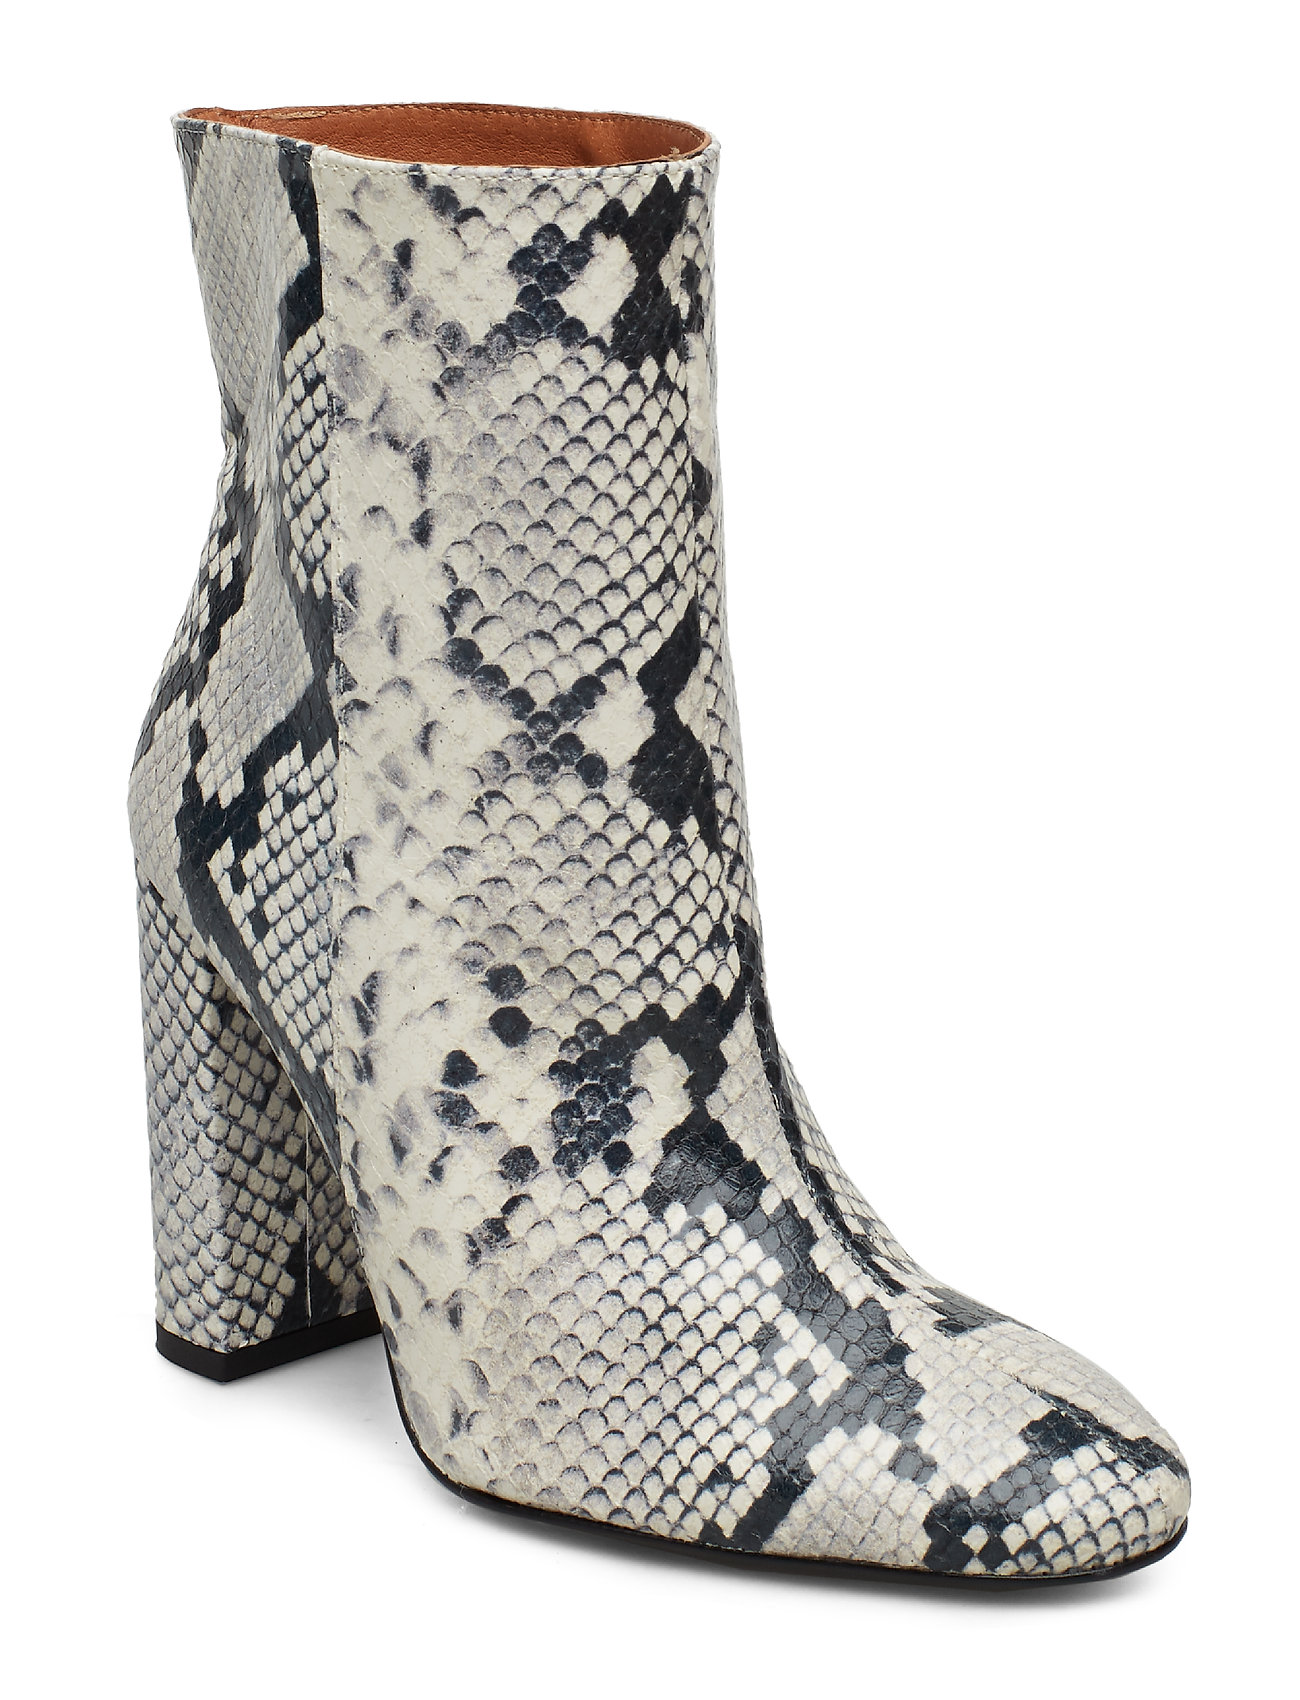 Image of Joan Snake Grey Shoes Boots Ankle Boots Ankle Boot - Heel Hvid Henry Kole (3406234425)